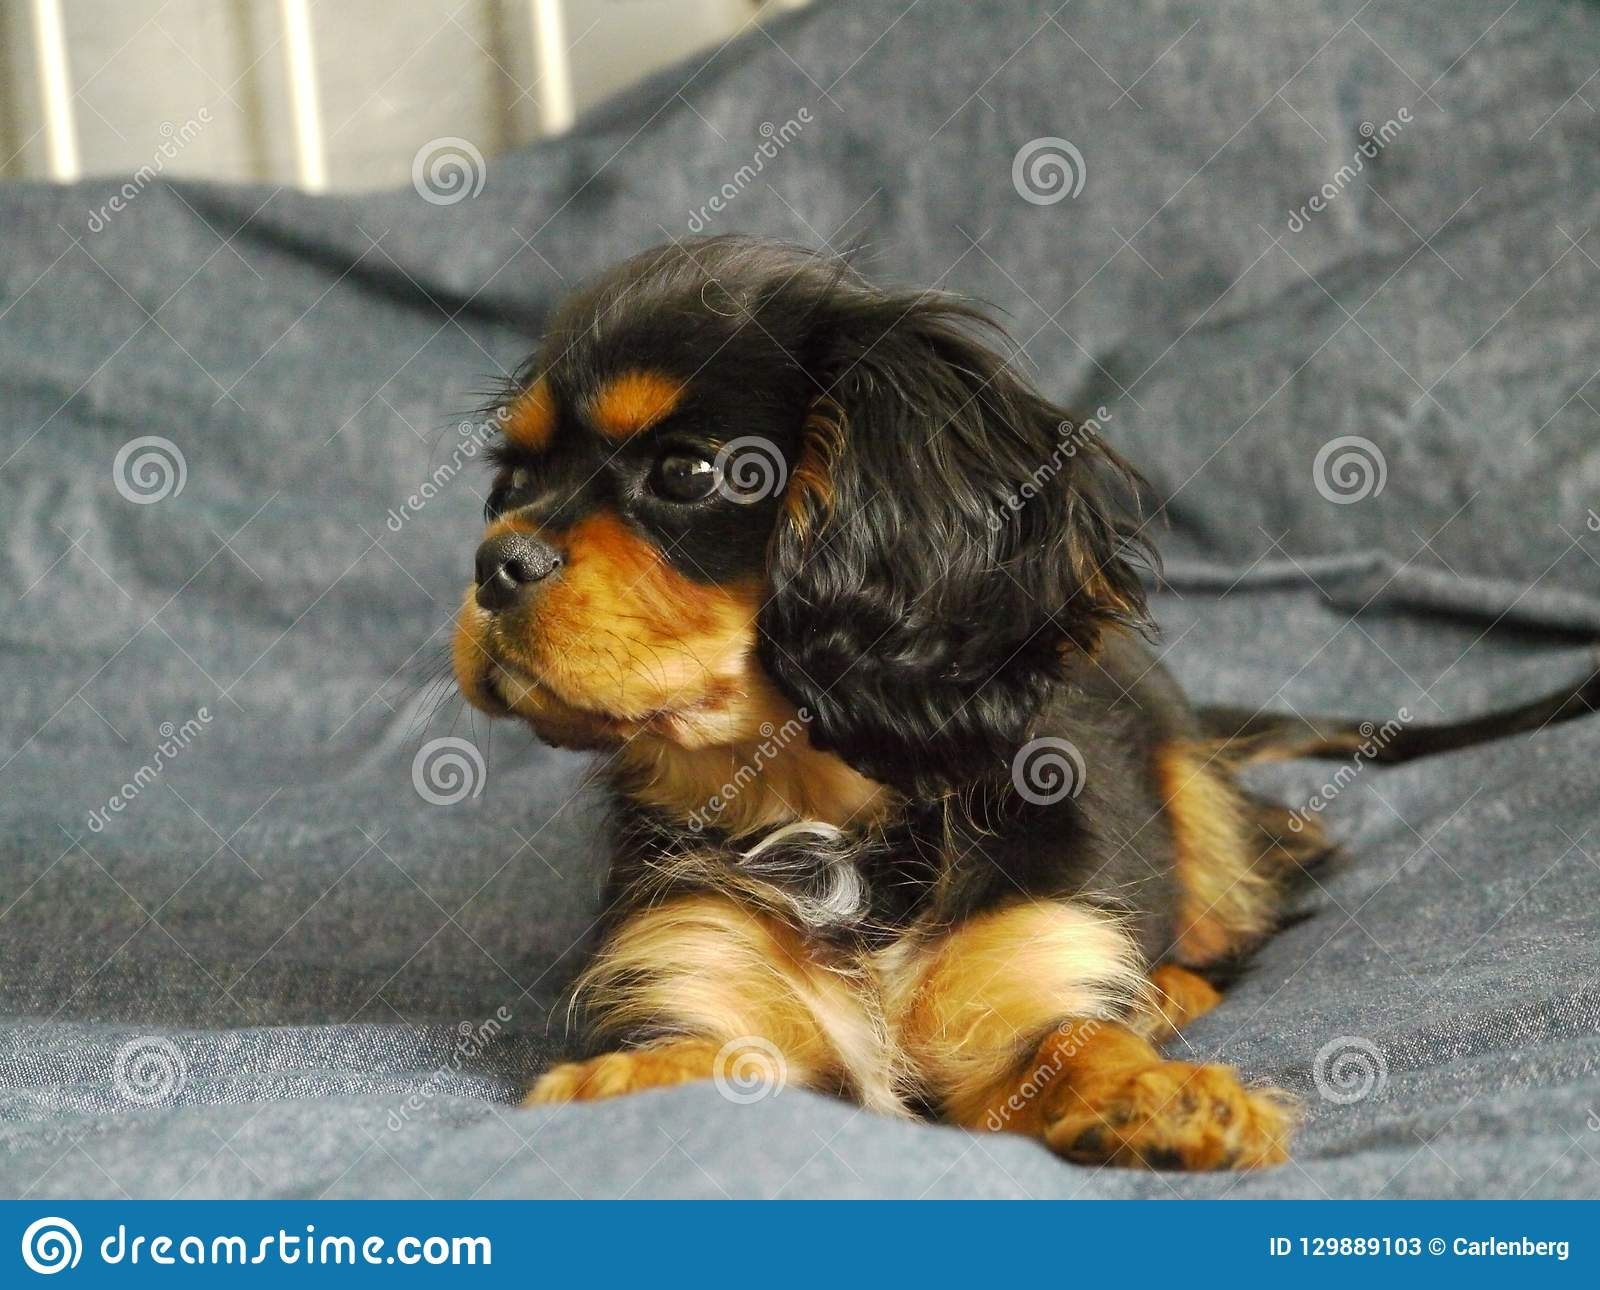 Cavalier King Charles Spaniel Puppy In Bed Stock Image Image Of Animal Background 129889103